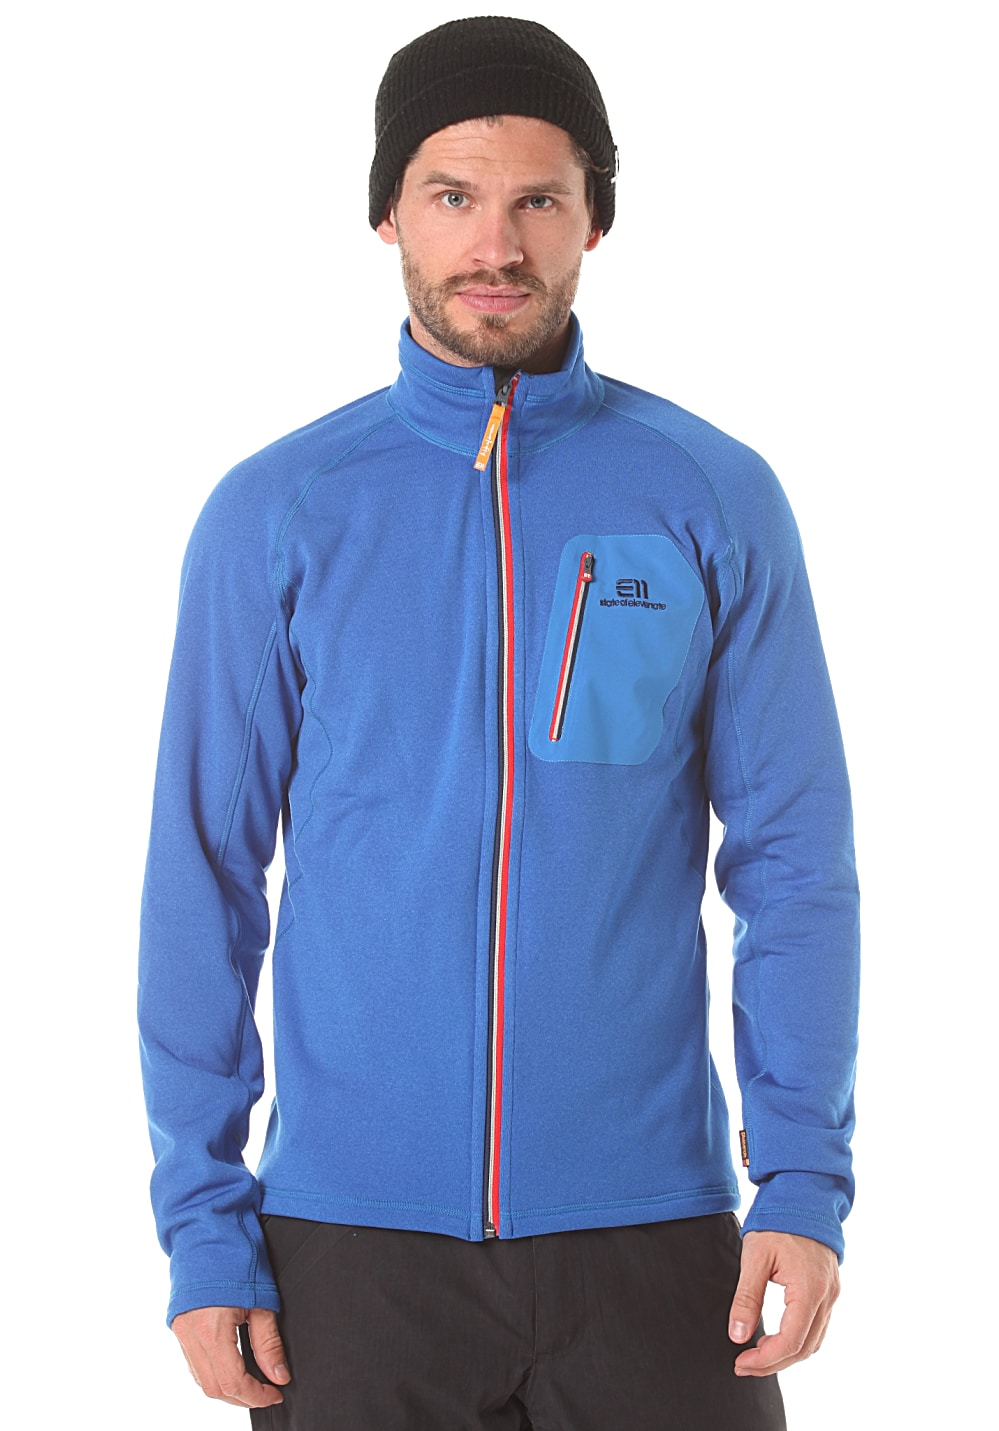 State OF Elevenate Arpette Stretch - Snowboardjacke für Herren - Blau - XL